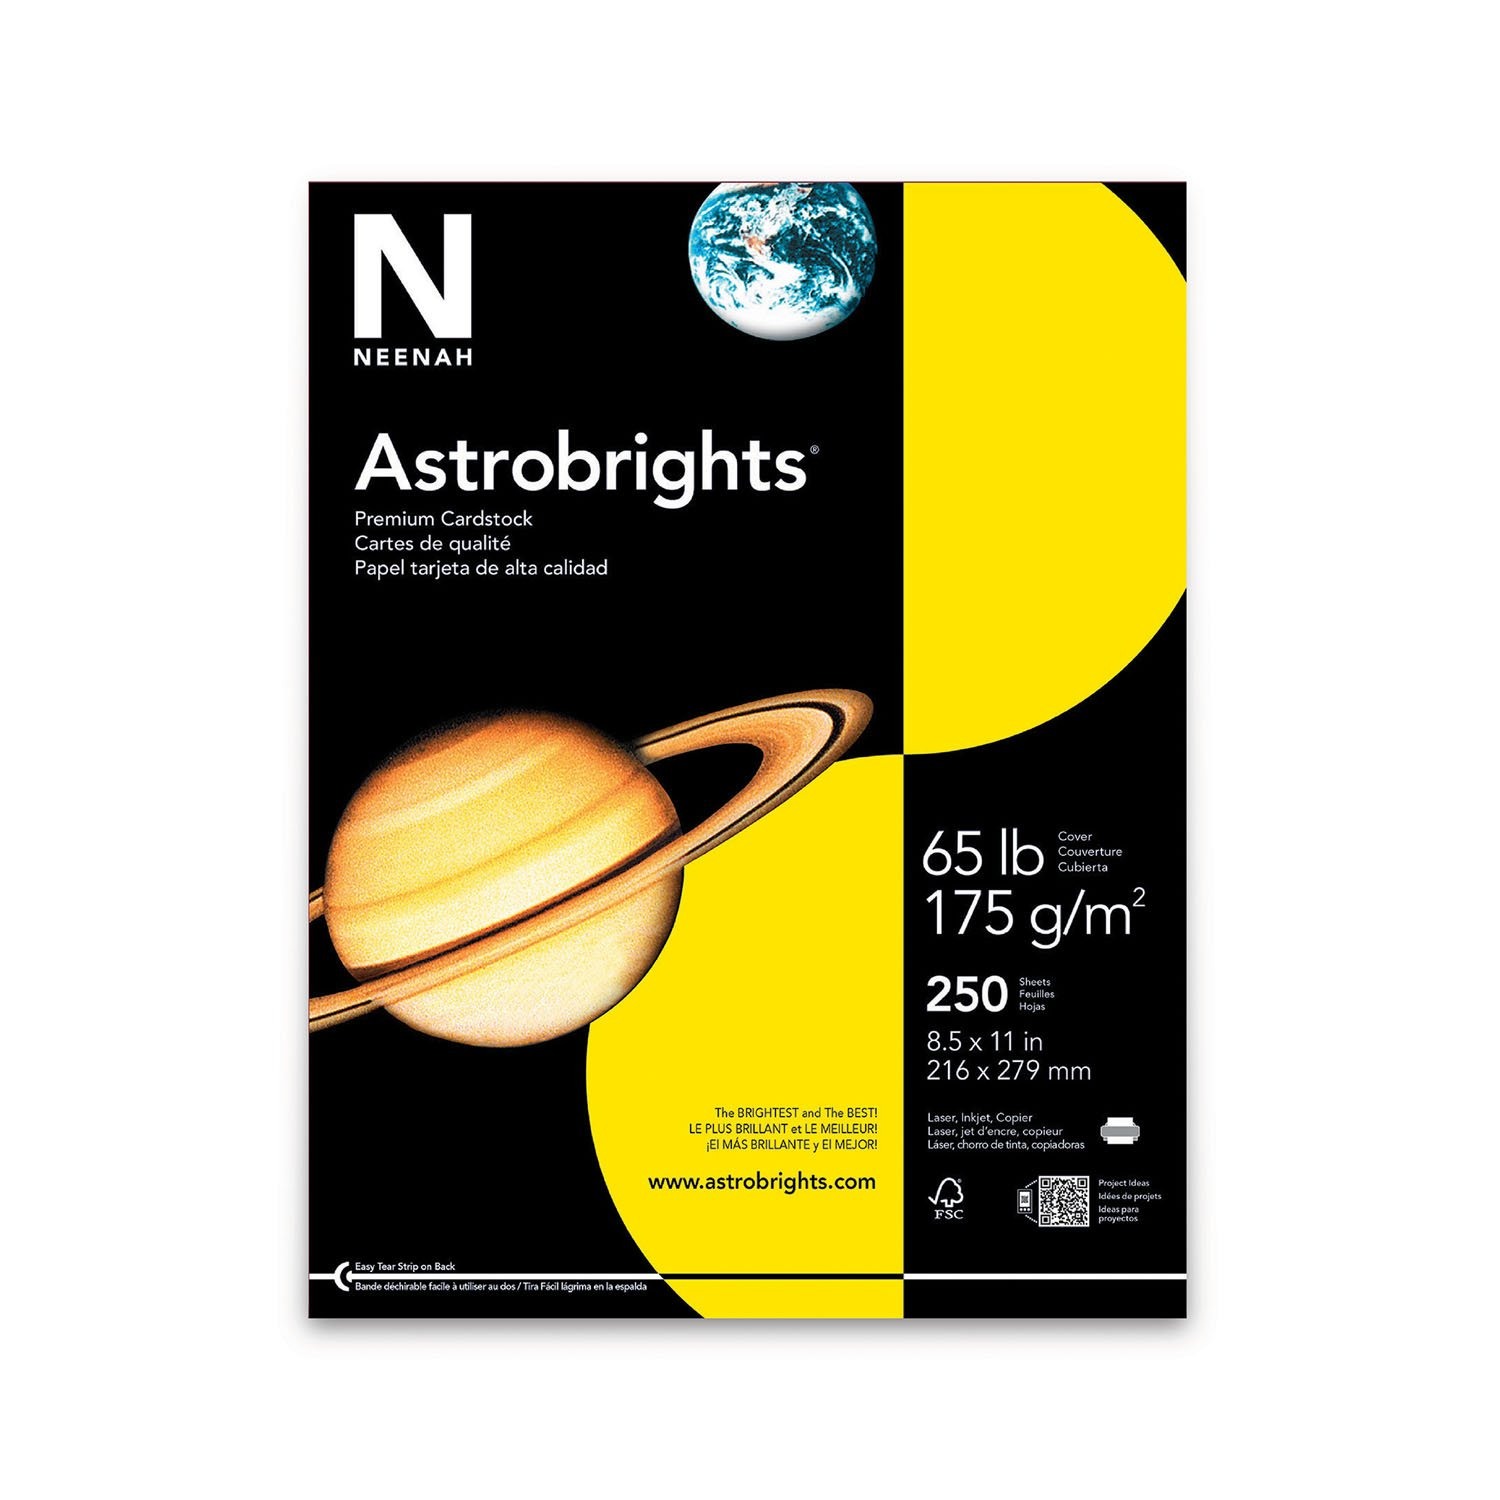 Wausua Astrobrights Cardstock 8.5 x 11 Inches 22761 Orbit Orange 250 Sheets 65 lb